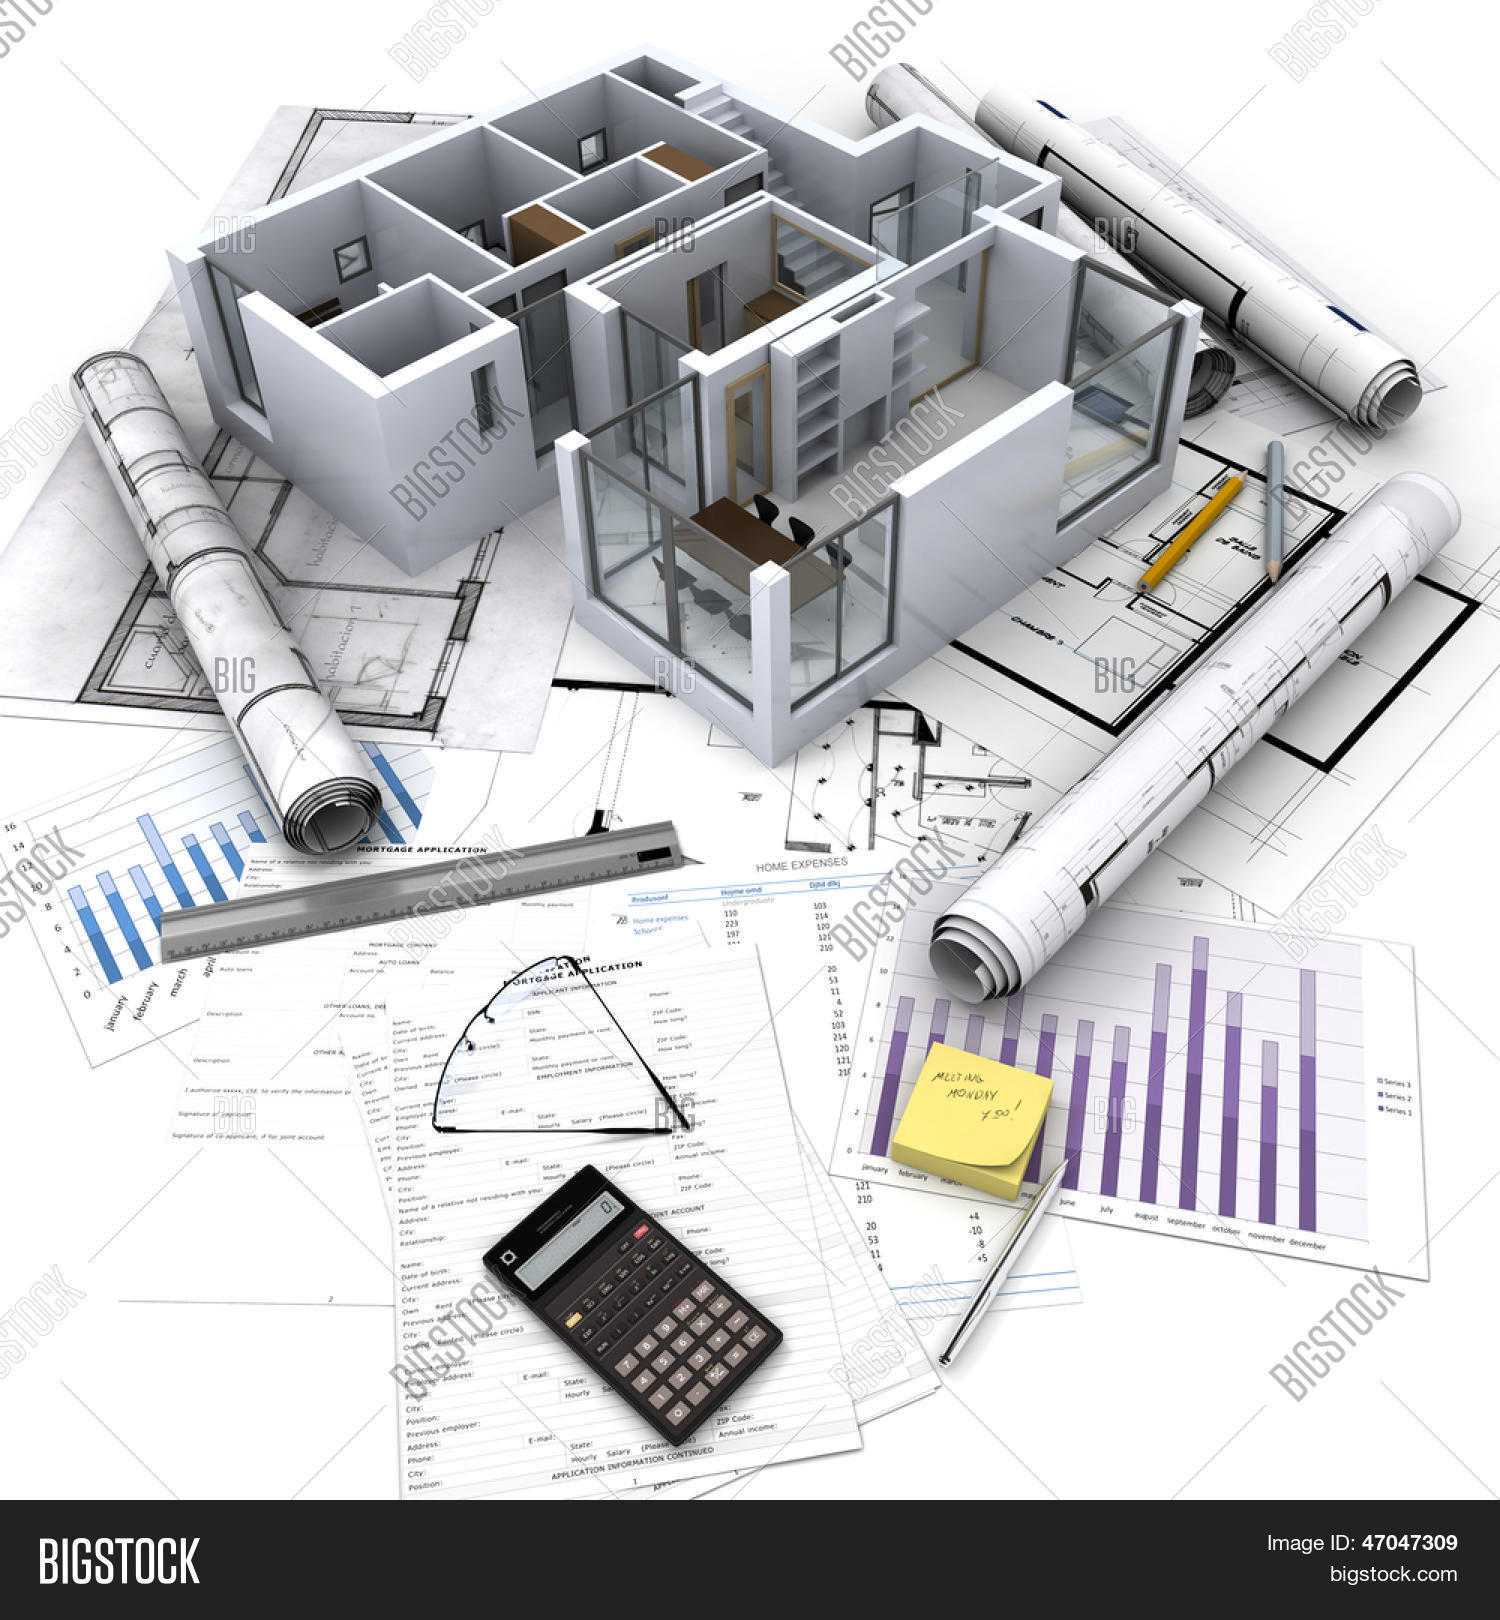 Office building open image photo free trial bigstock office building with open interior on top of blueprints documents and mortgage calculations malvernweather Choice Image